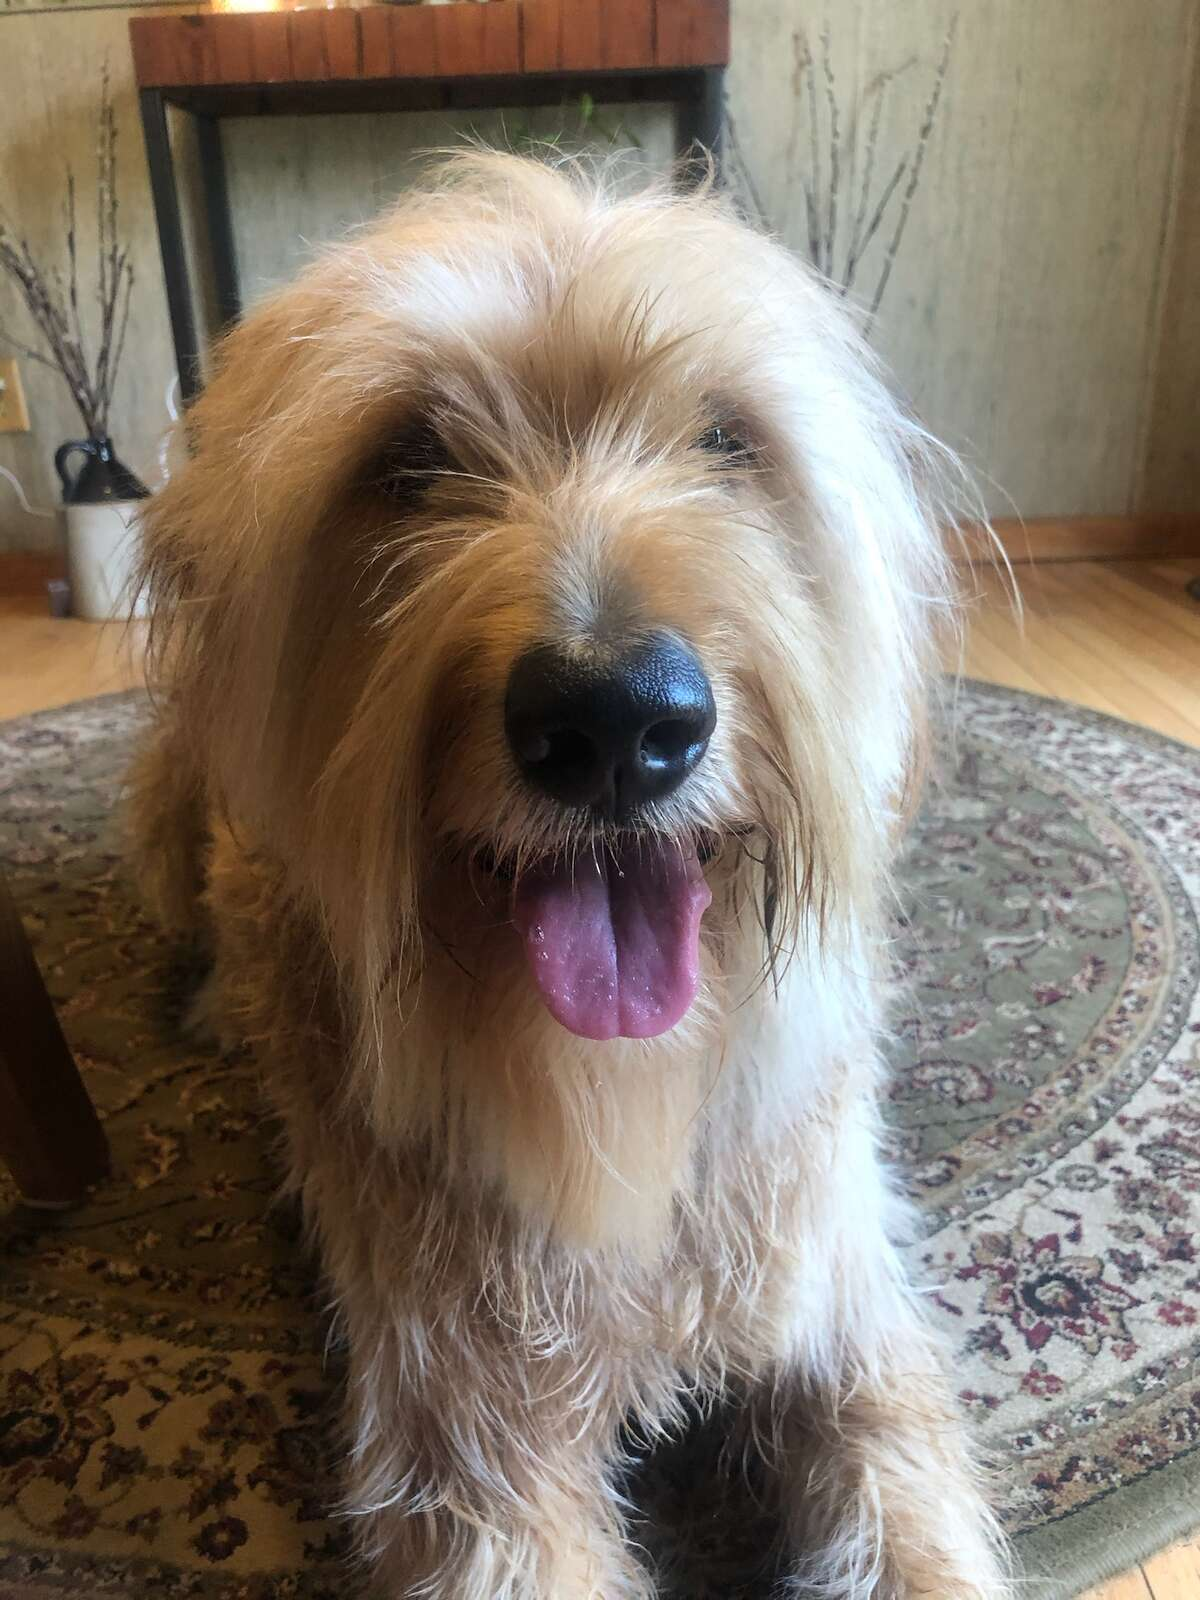 From Taylor DeLong: This is Shaggy. Wolfhound-retreiver mix.